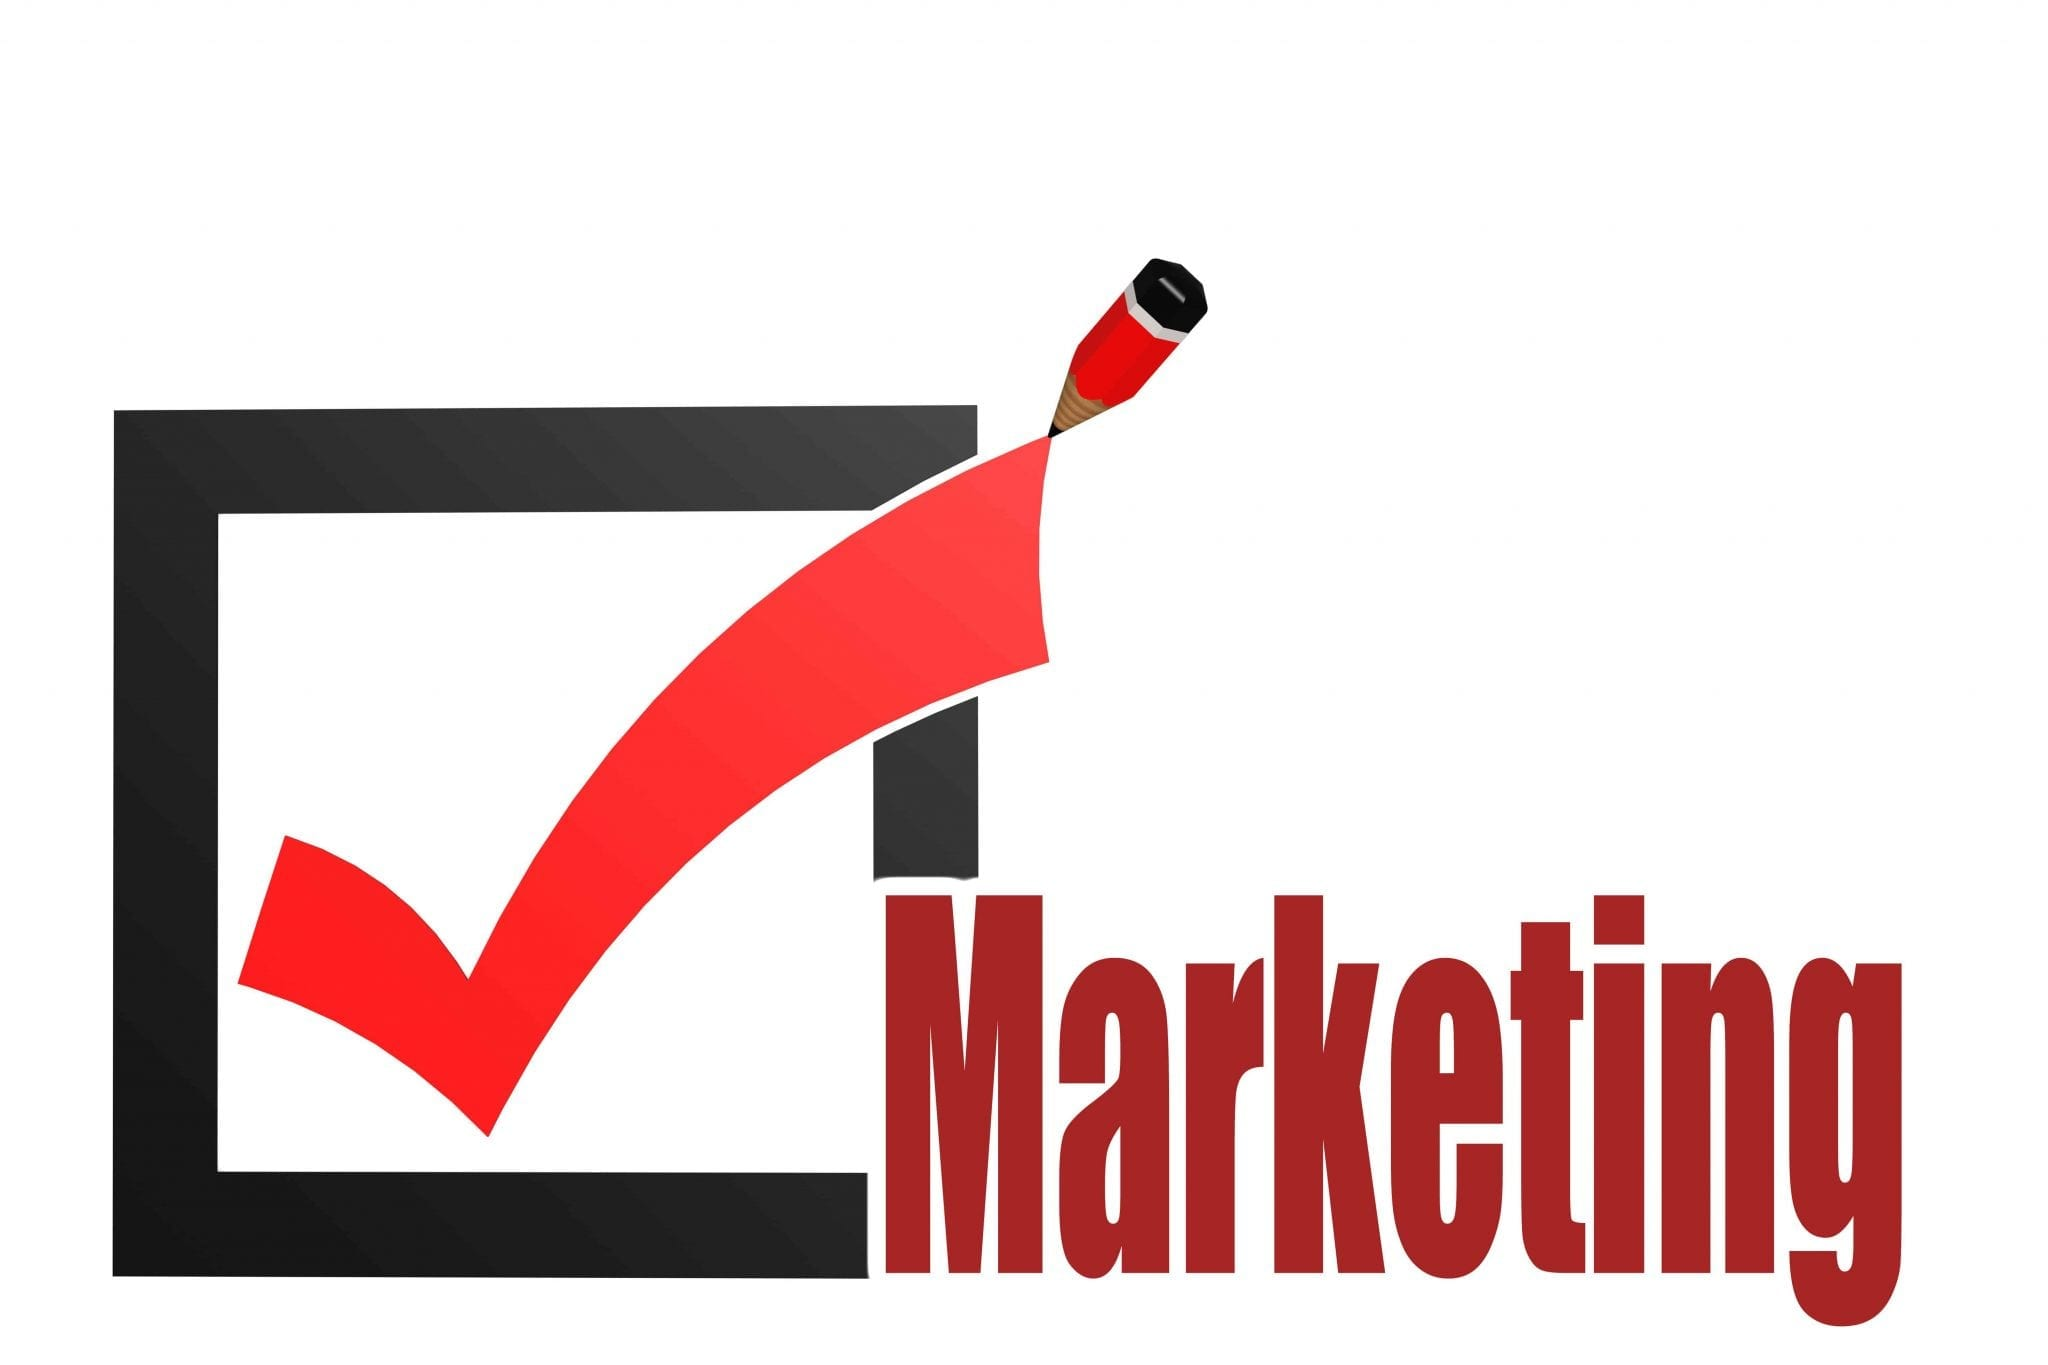 Six marketing tips to boost your business